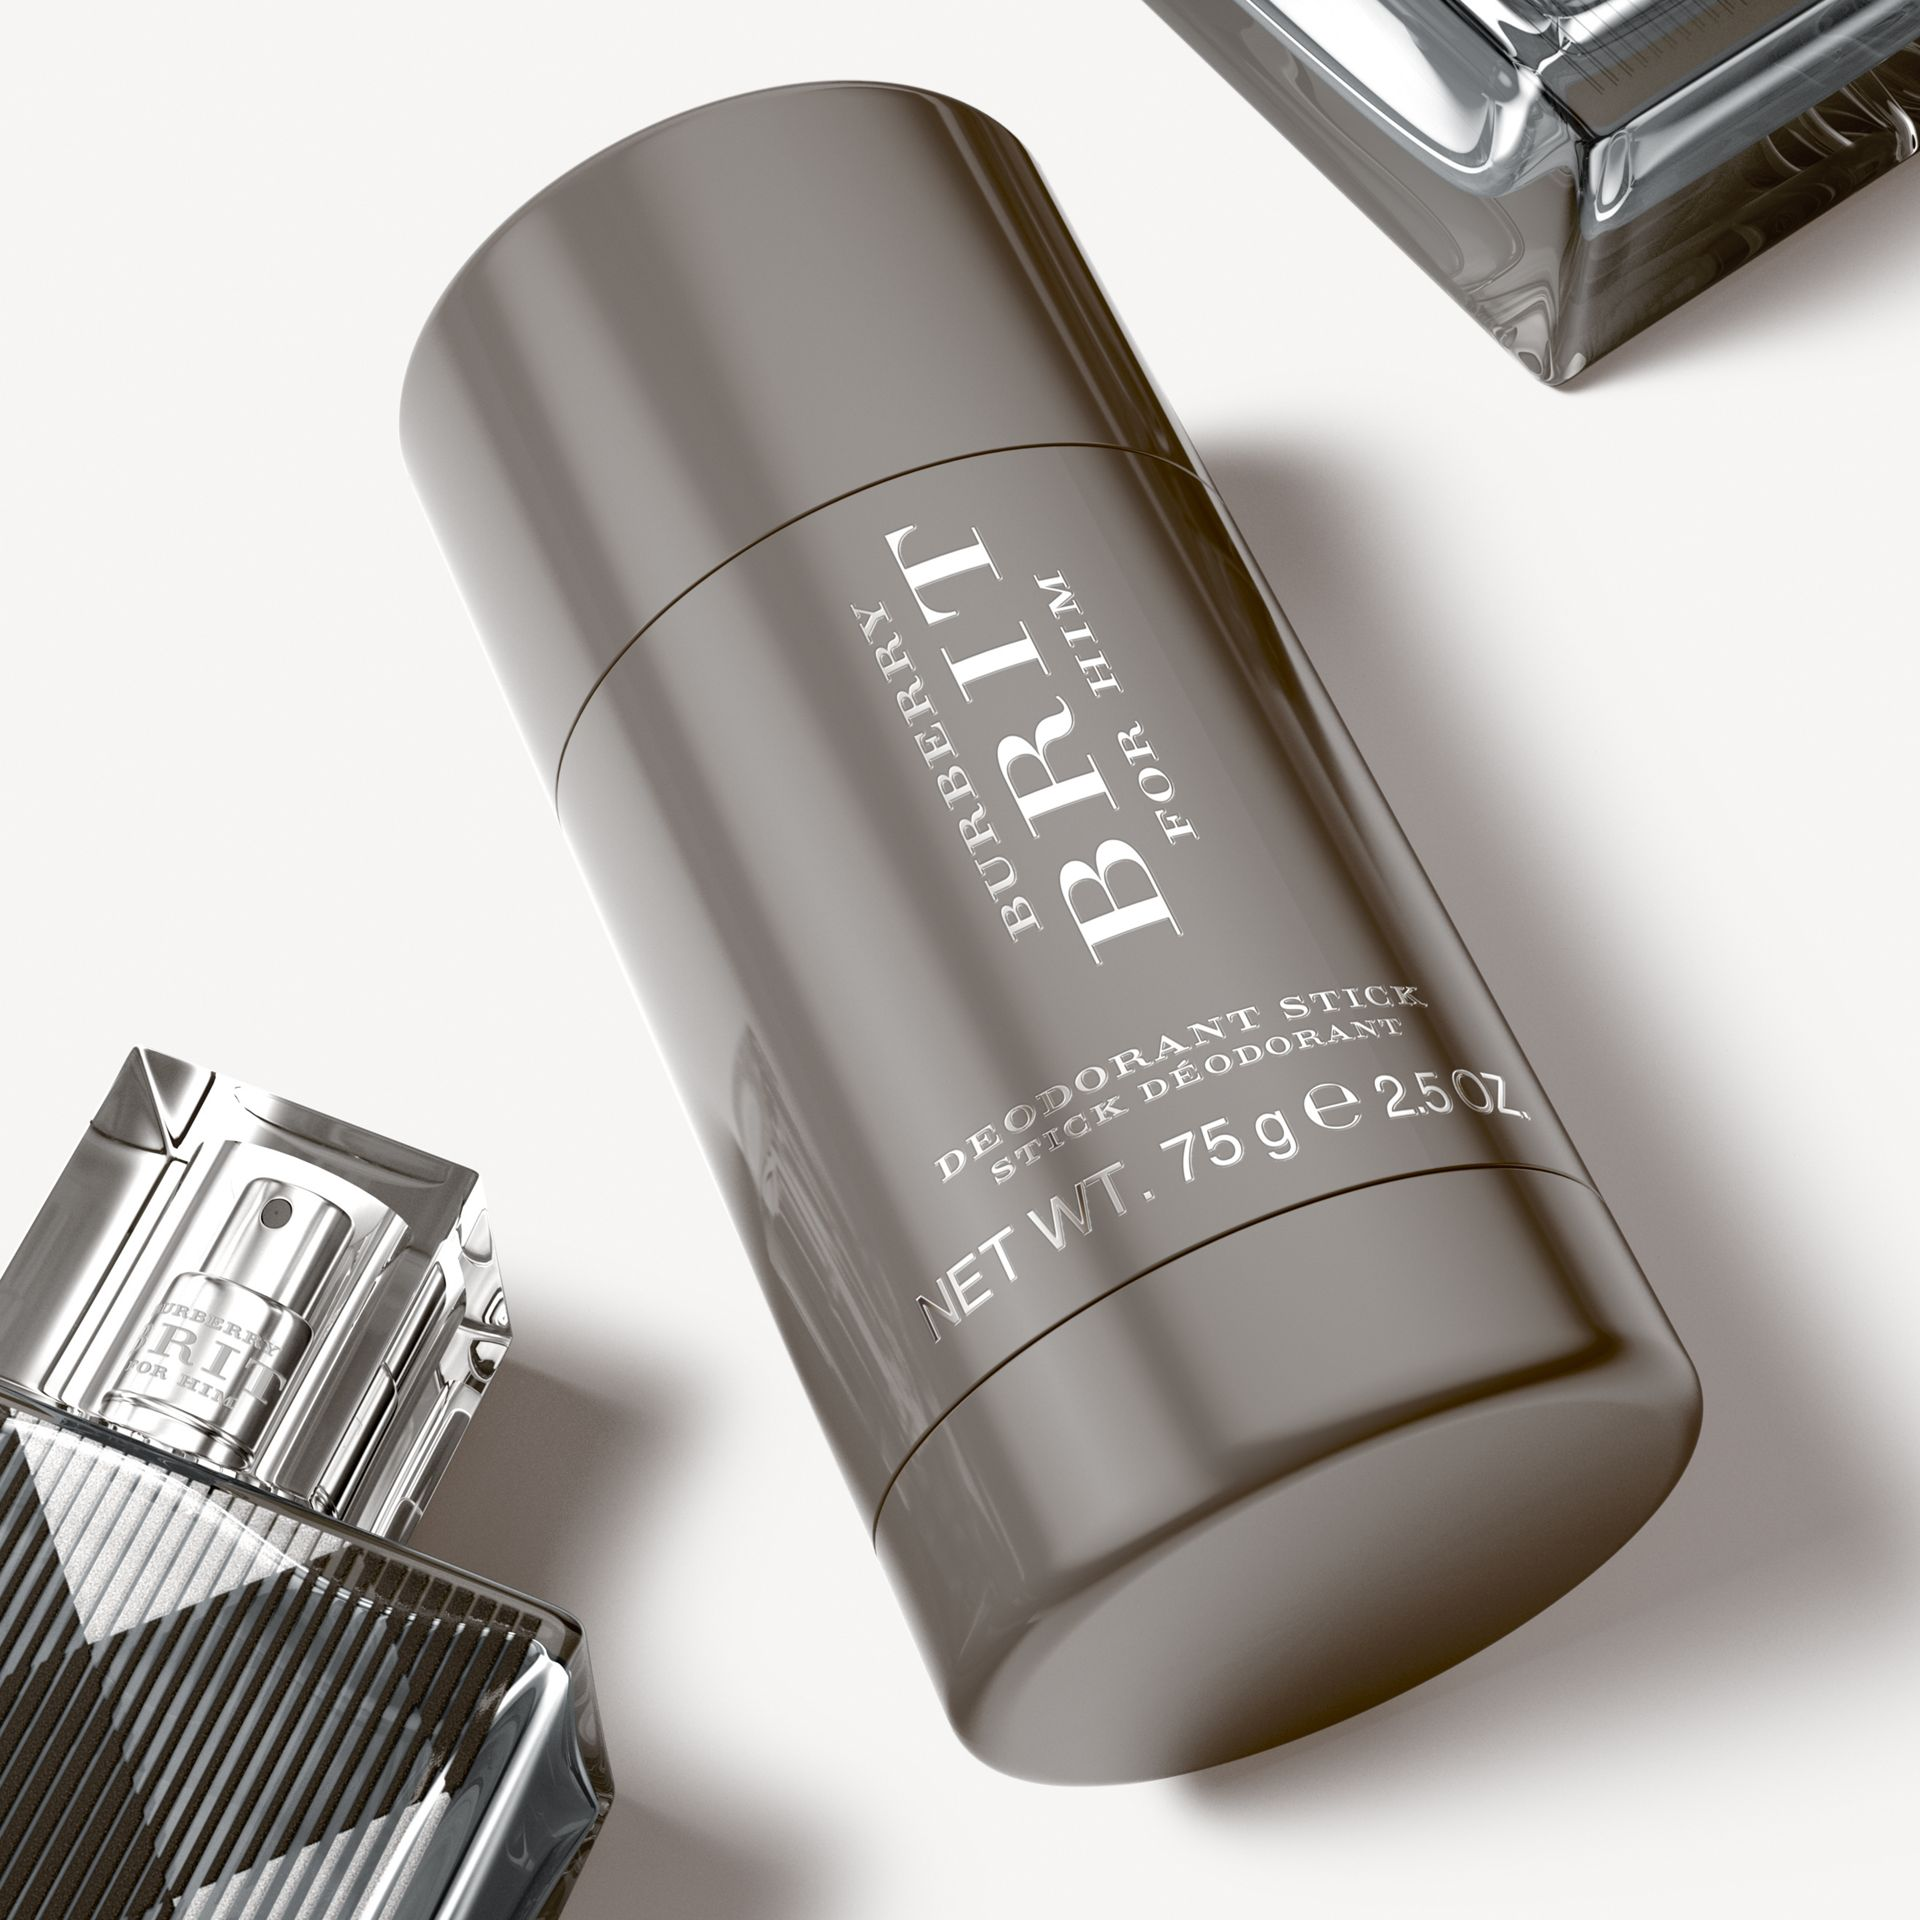 Burberry Brit For Him Deodorant-Stick 75 g - Galerie-Bild 2